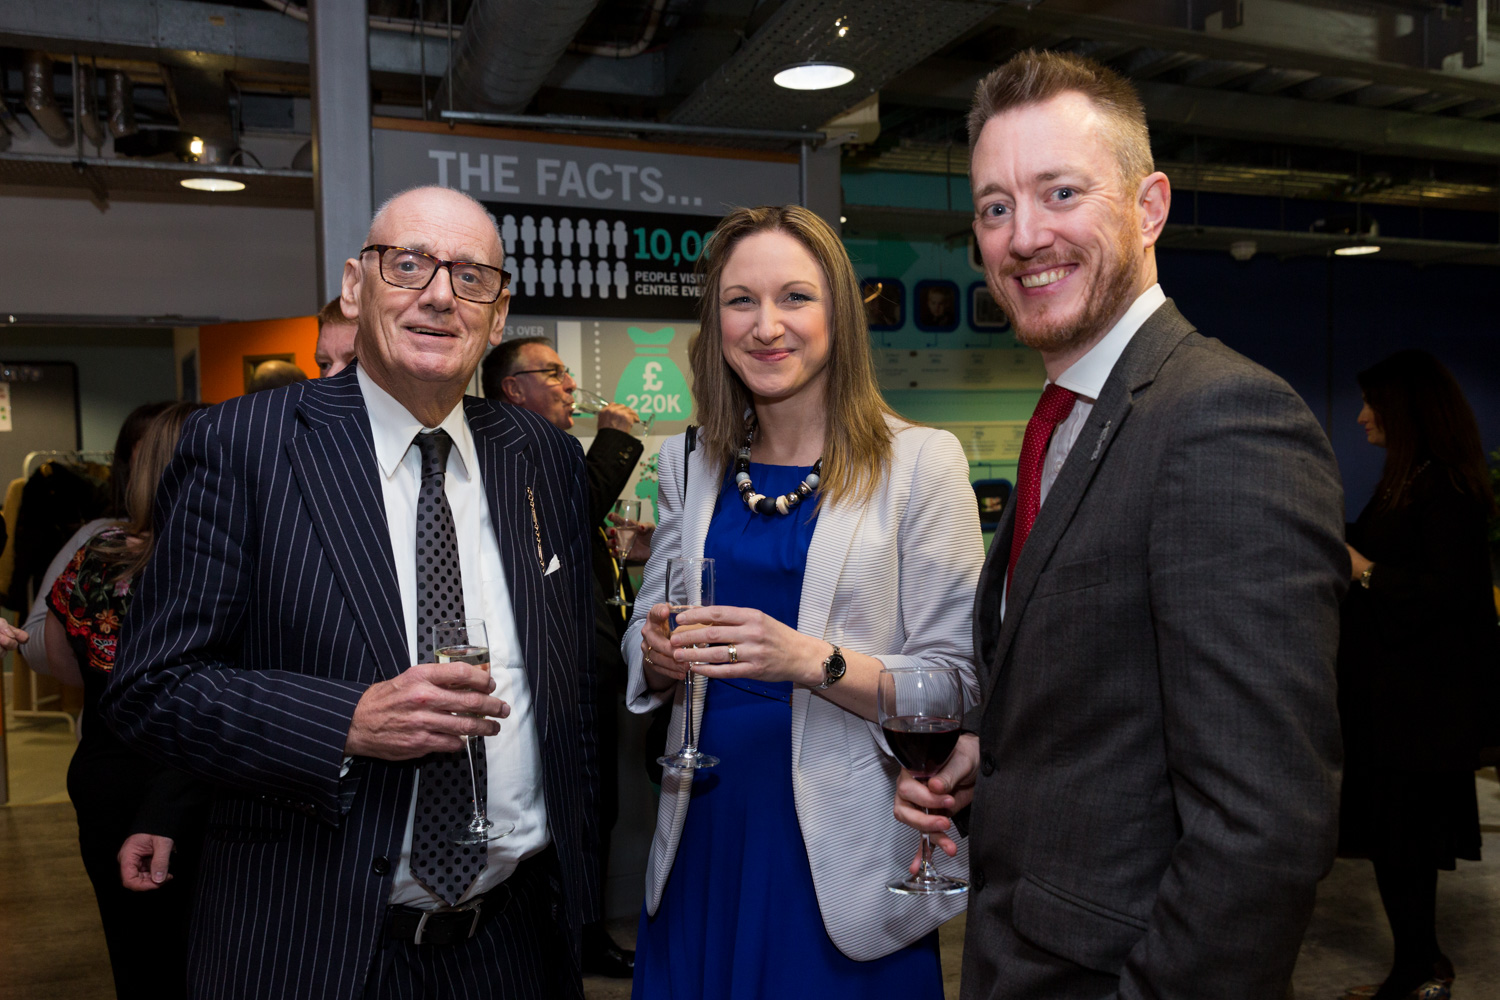 FDR Law at Warrington Business Awards 2018